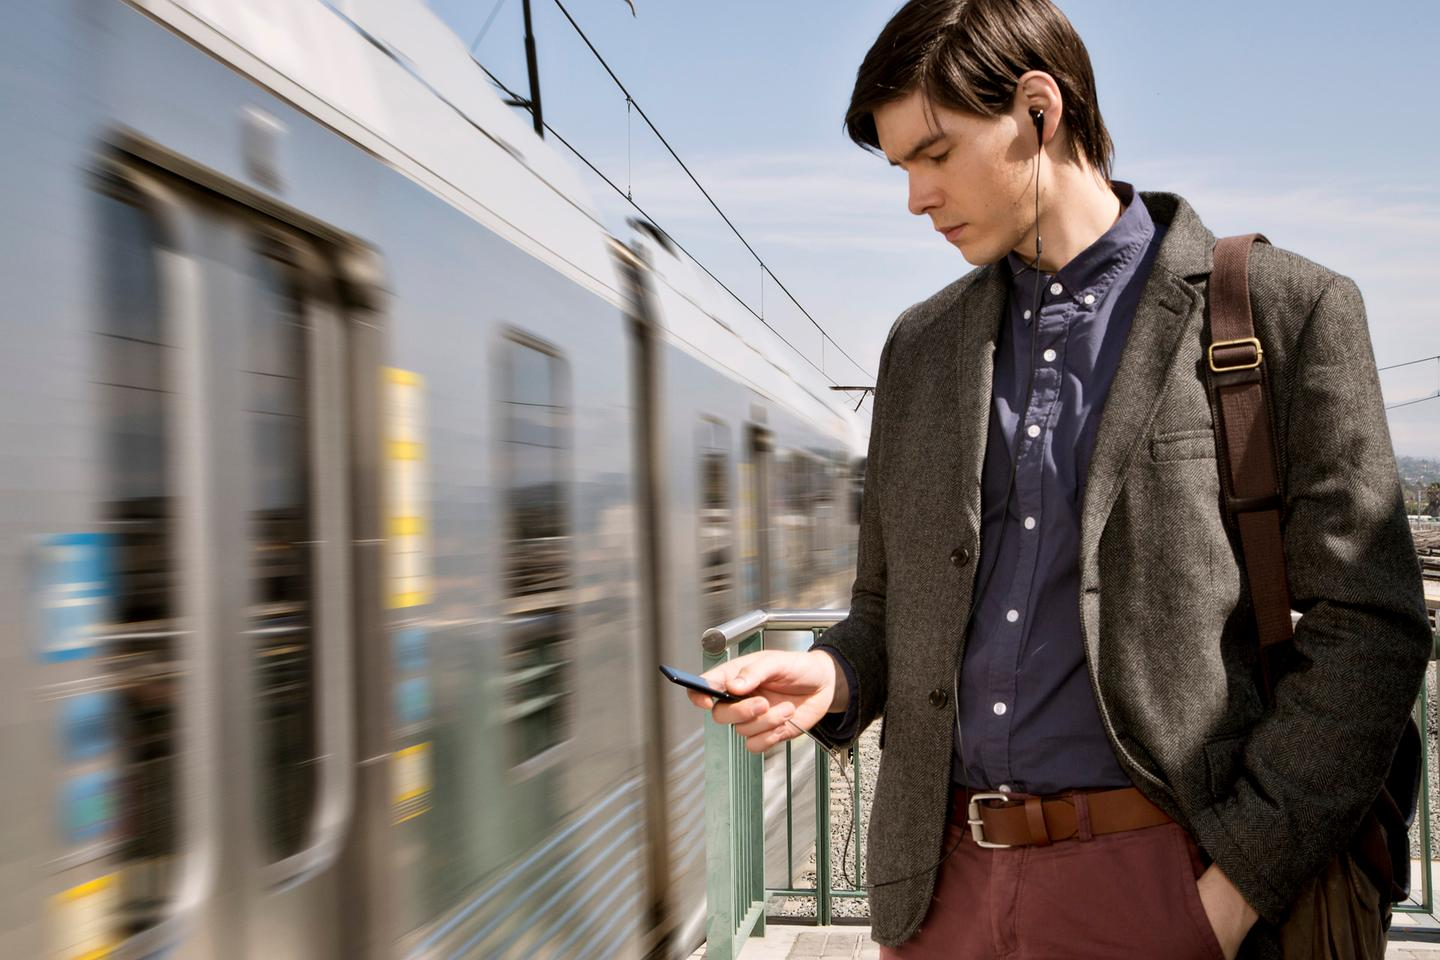 E570 Series Walkman models benefit from noise-canceling circuitry